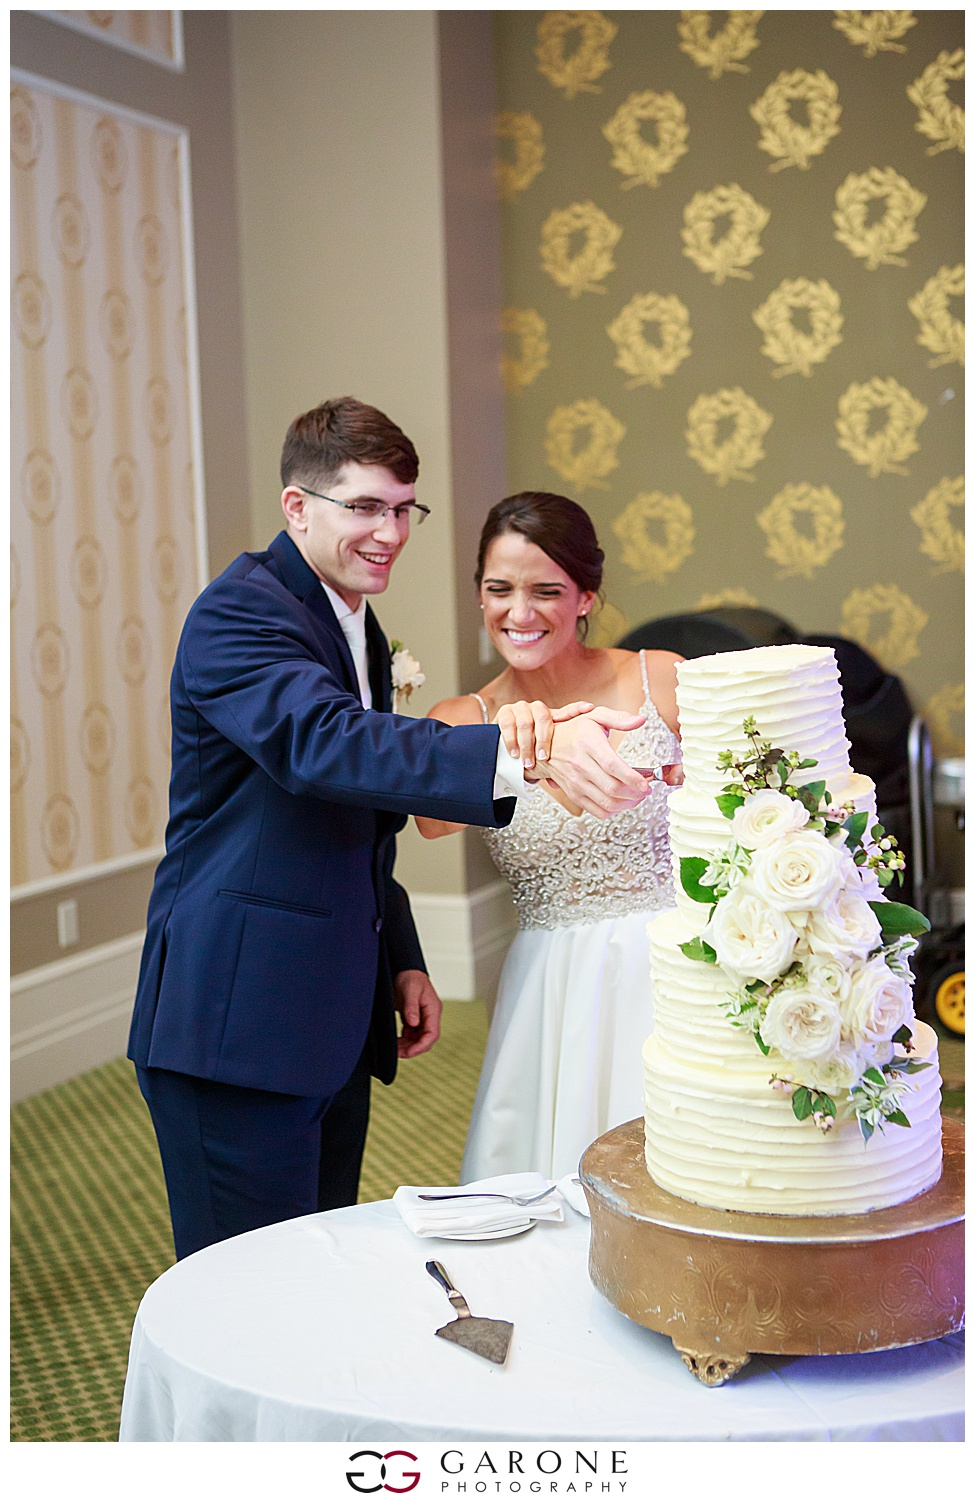 Omni_Mount_Washington_hotel_Wedding_White_Mountain_Wedding_Garone_Photography_0046.jpg